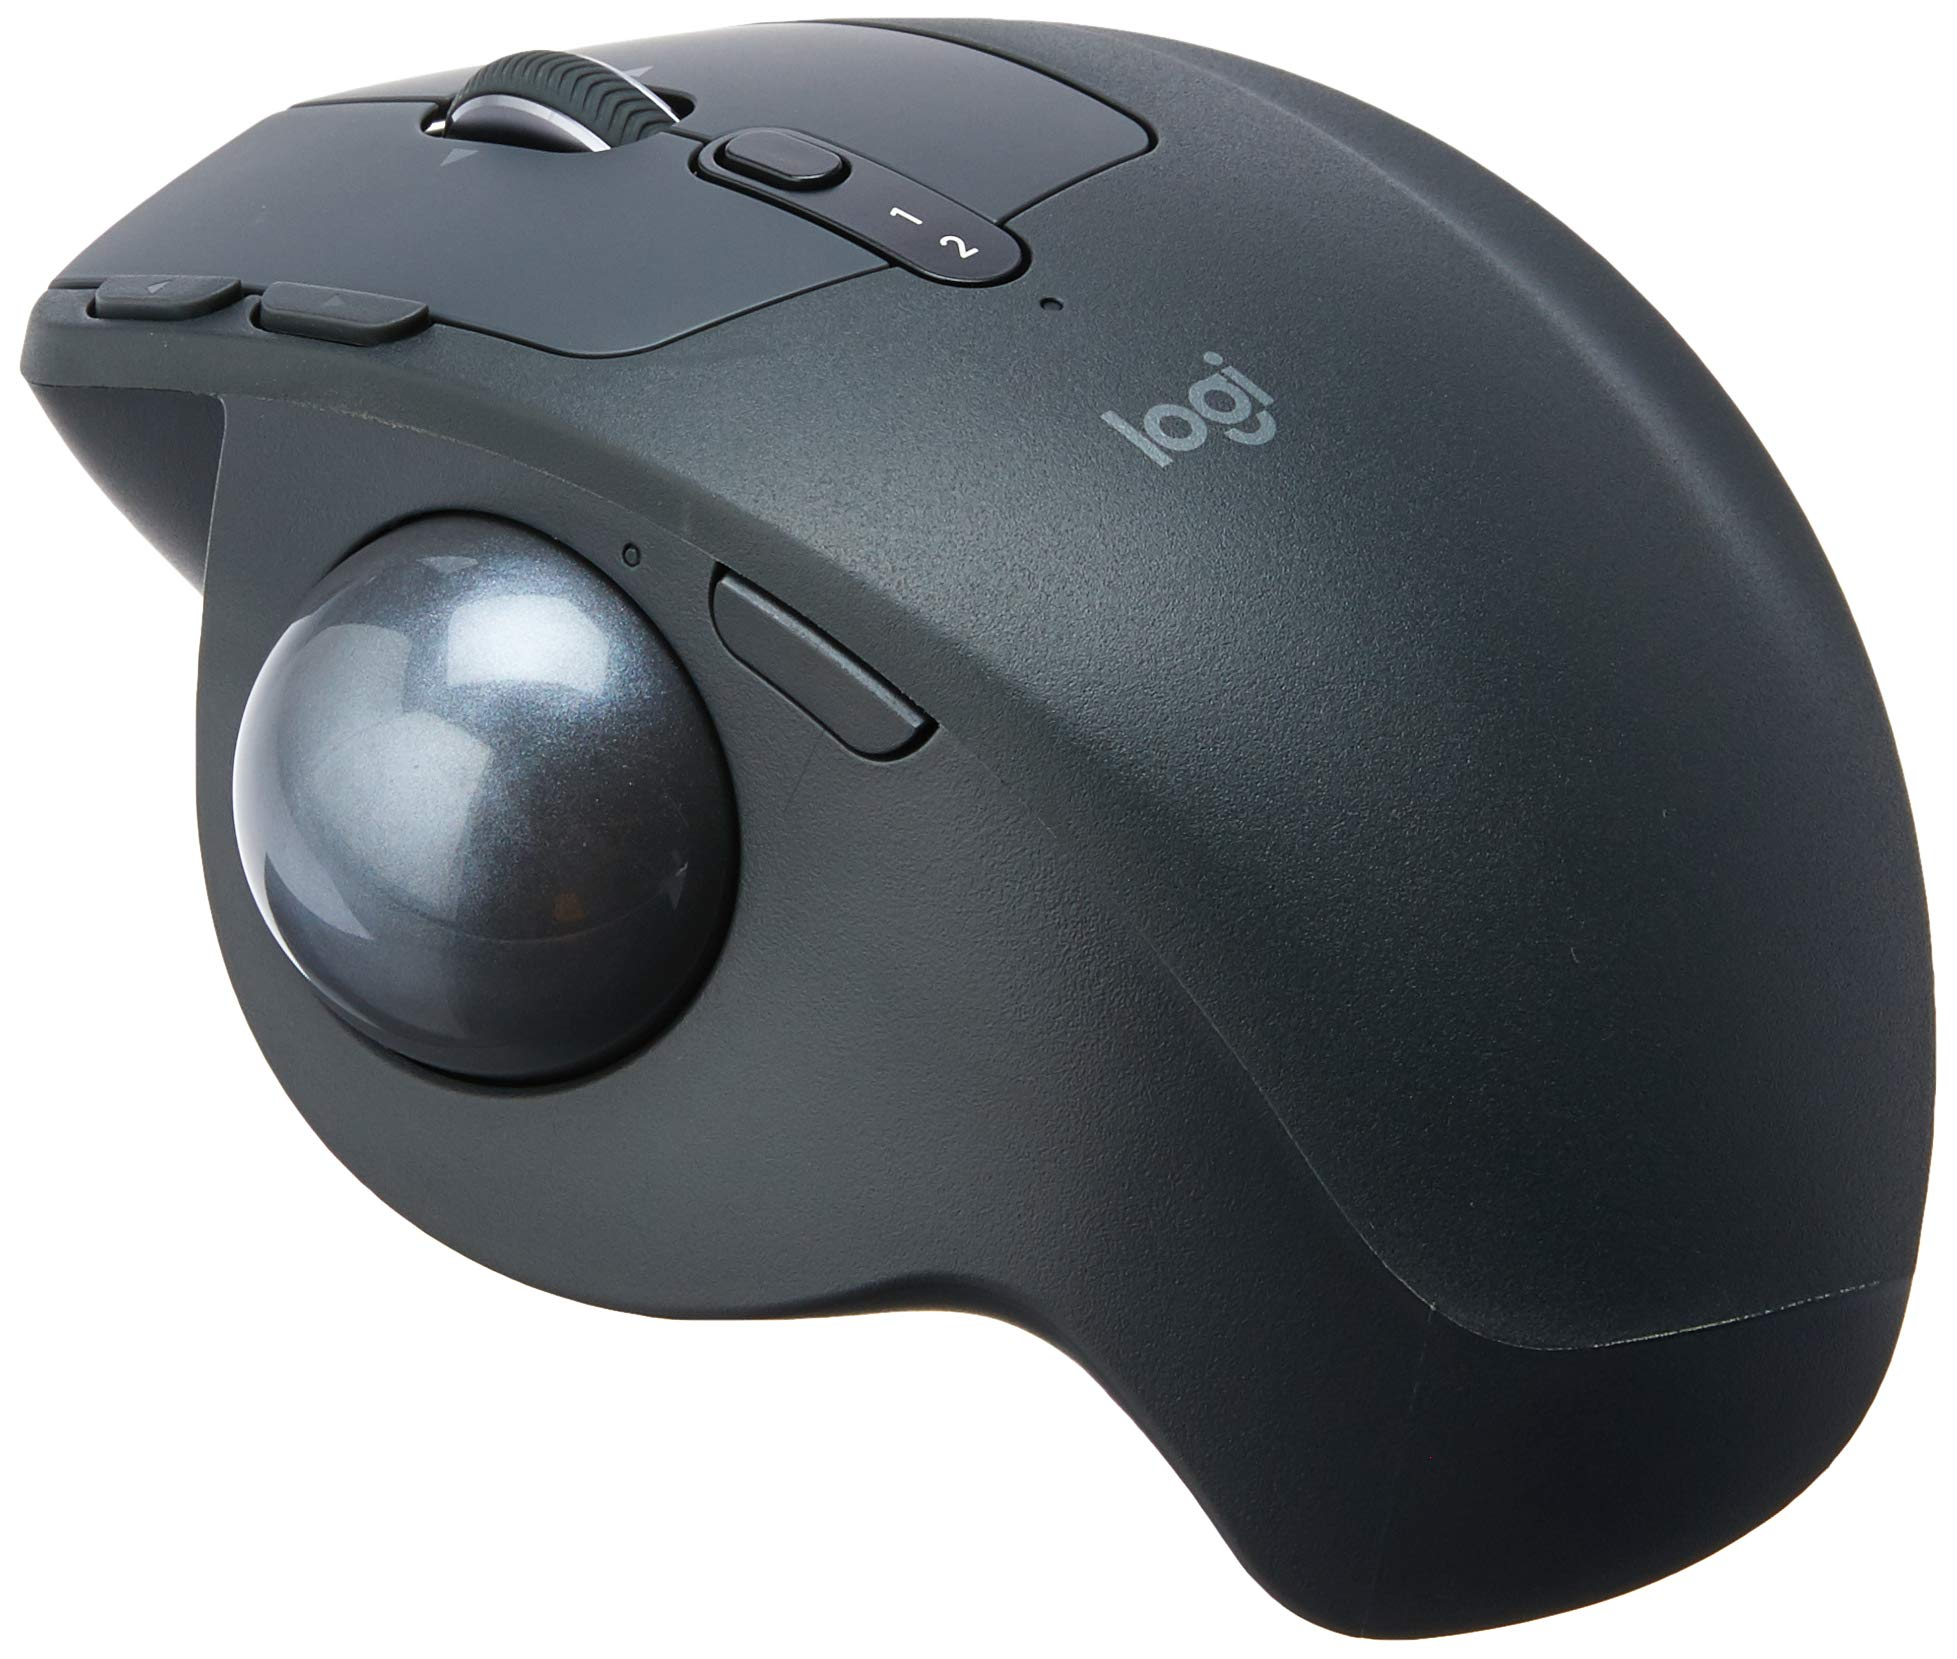 Logitech MX Ergo Wireless Trackball Mouse – Adjustable Ergonomic Design, control and Move Text/Images/Files Between 2 Windows and Apple Mac Computers (Bluetooth or USB), Rechargeable, Graphite